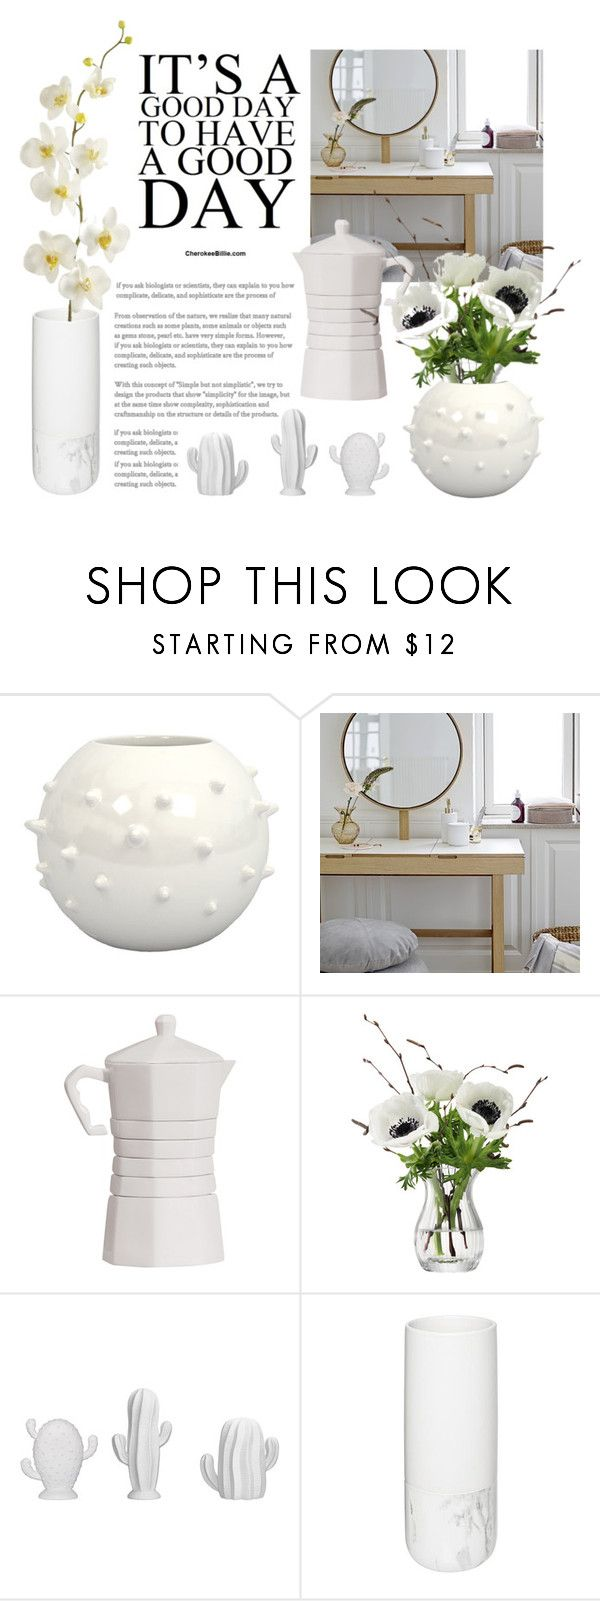 """""""morning flower power"""" by froileinwalther ❤ liked on Polyvore featuring interior, interiors, interior design, home, home decor, interior decorating, Bloomingville, LSA International and Pier 1 Imports"""